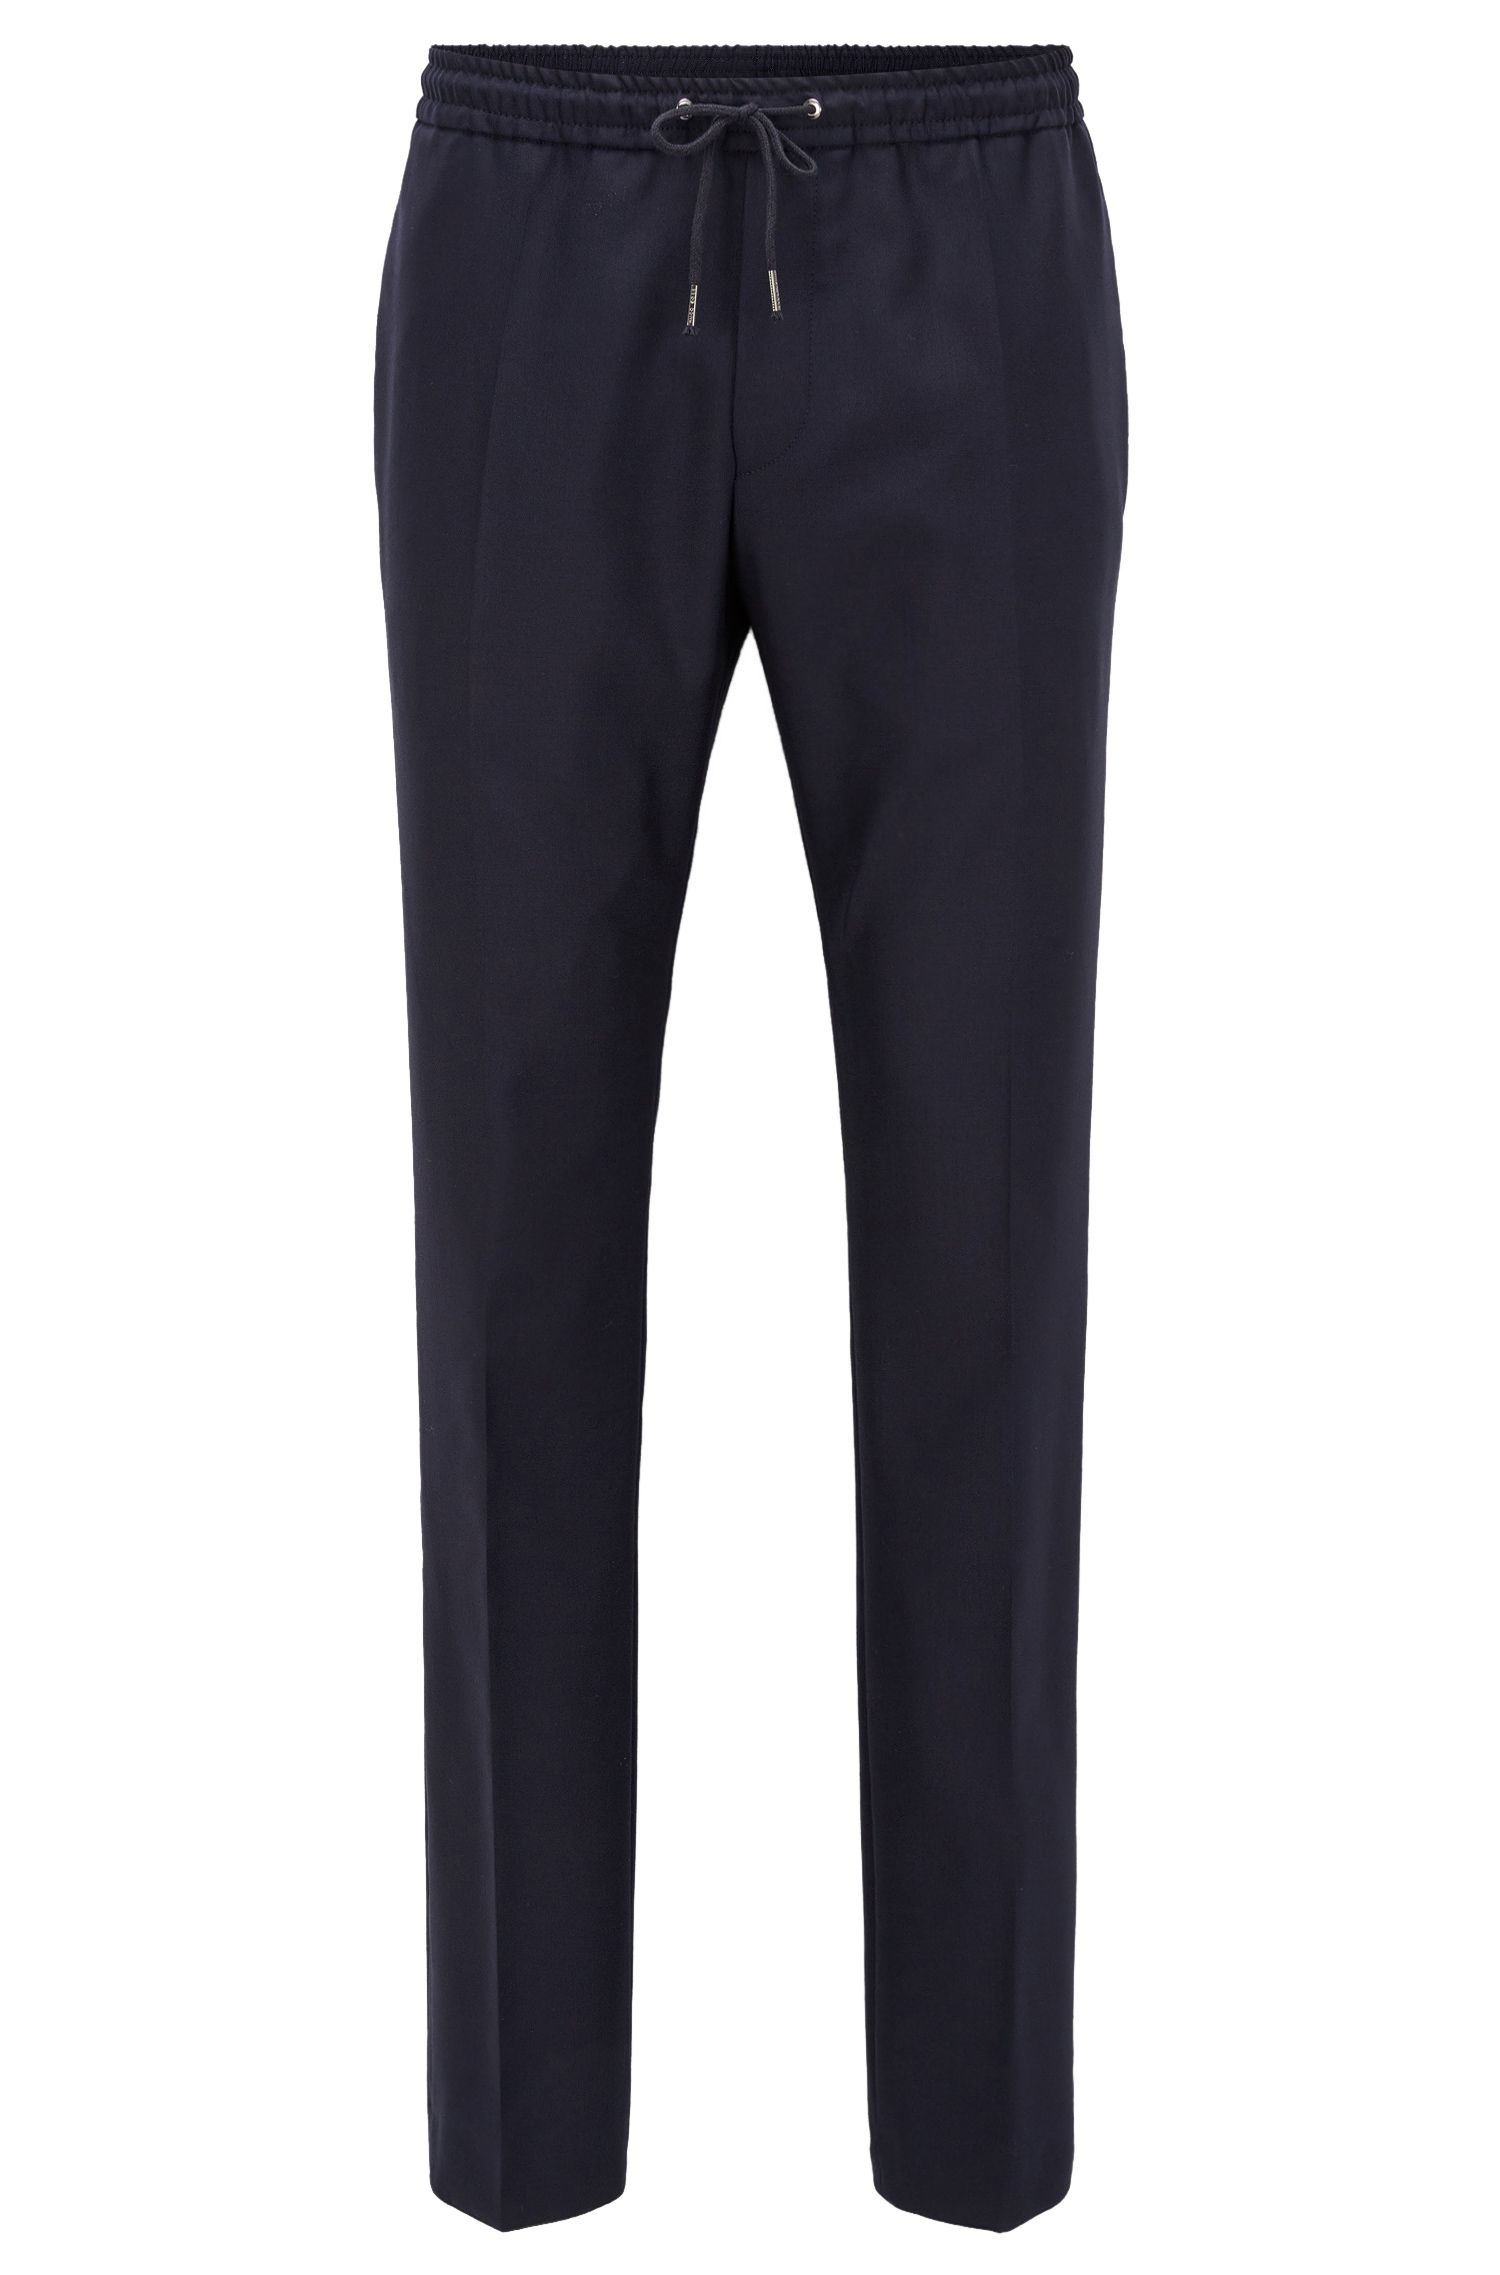 Virgin Wool Drawstring Pant, Relaxed Fit | Barne